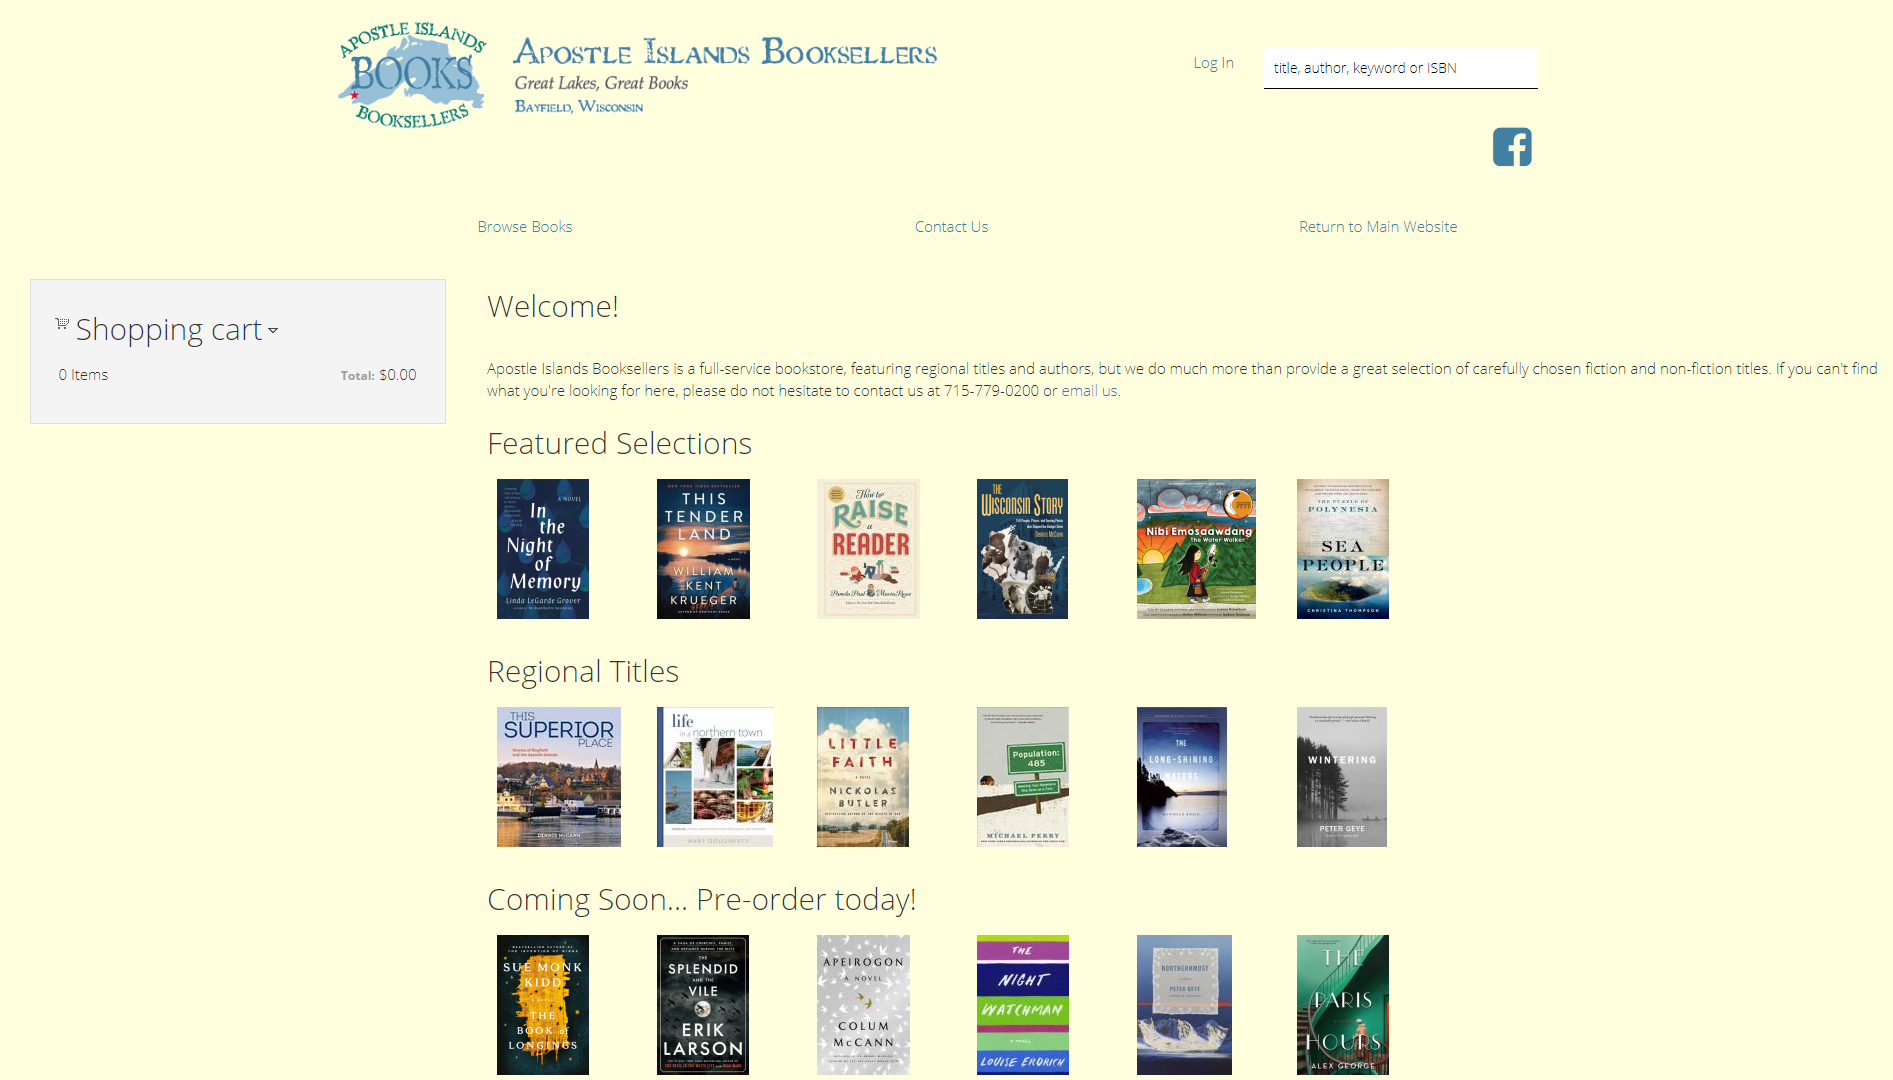 Apostle Islands Booksellers IndieLite Home Page